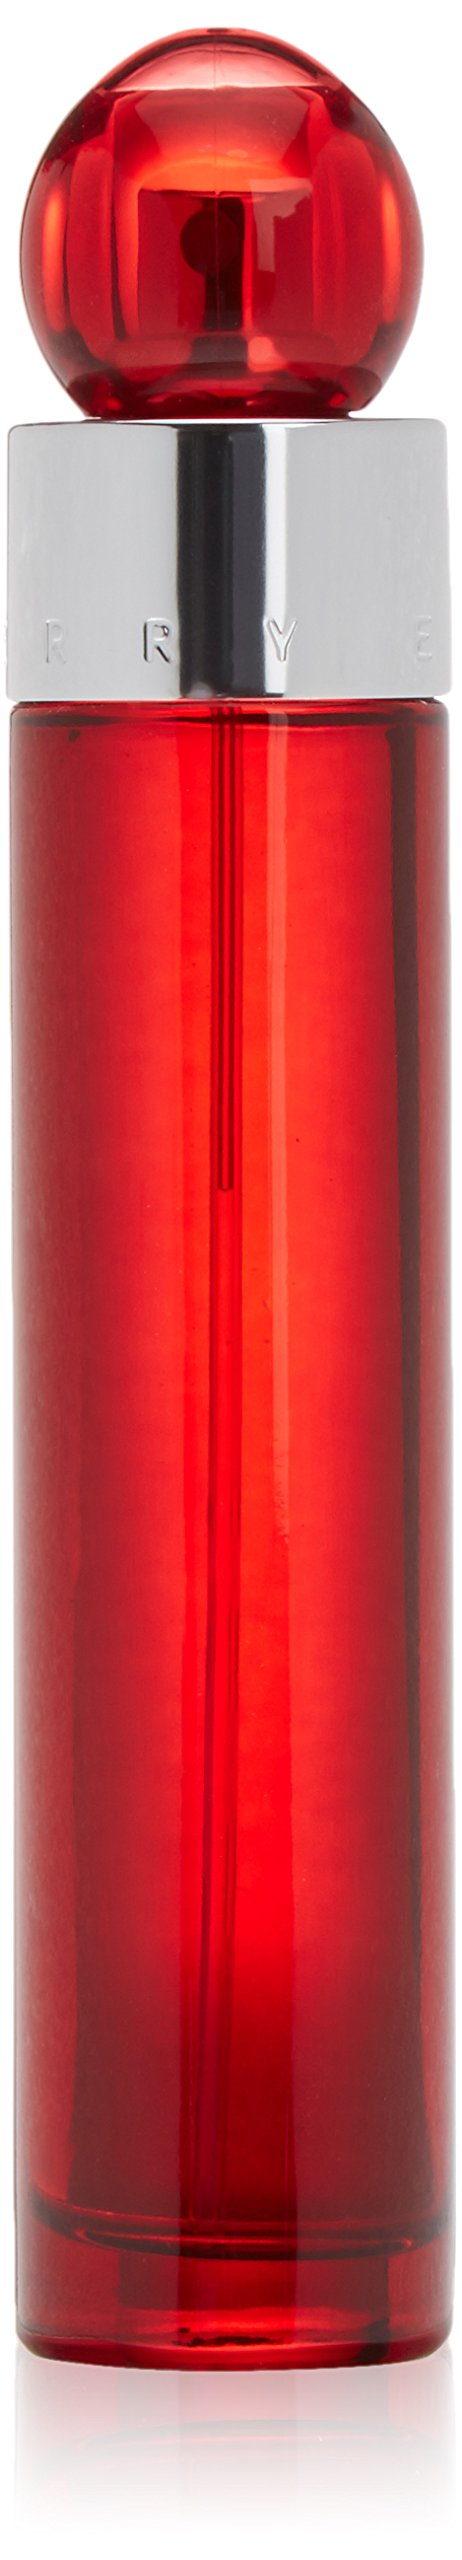 Perry Ellis 360 Red for Men, 3.4 fl oz EDT by Perry Ellis